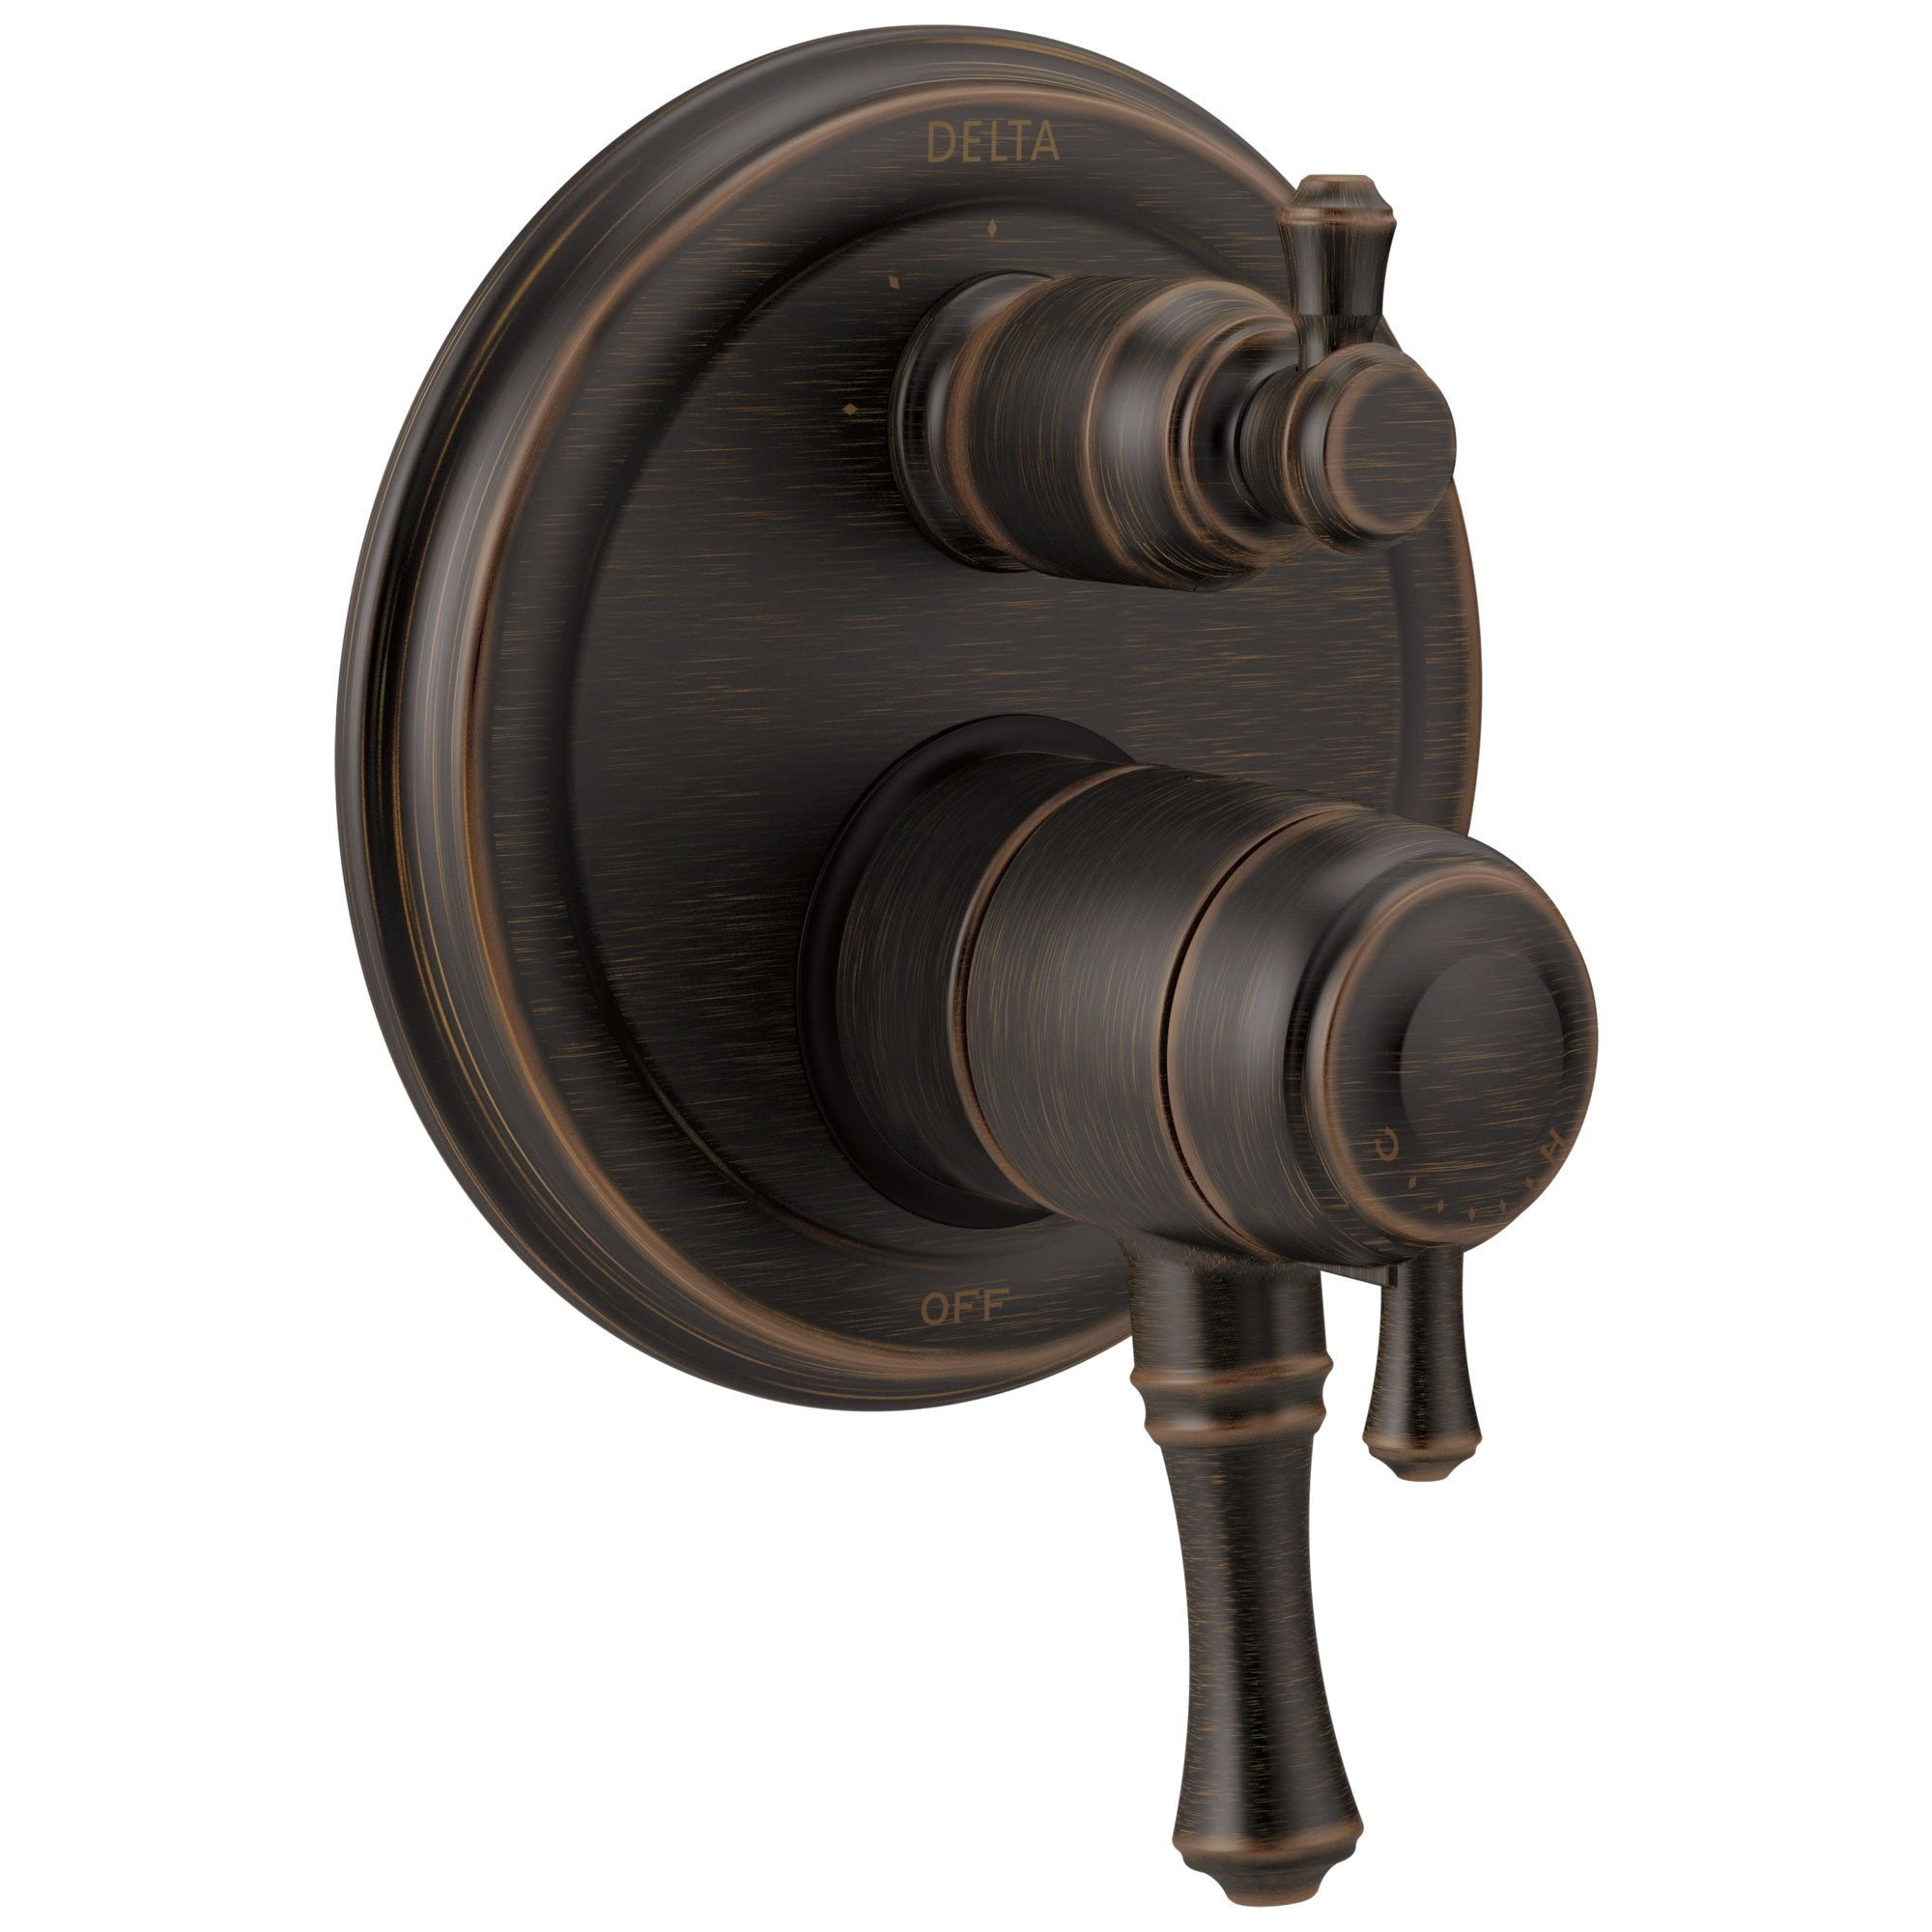 Delta Cassidy Venetian Bronze Traditional Shower Faucet Control Handle with 3-Setting Integrated Diverter Includes Trim Kit and Valve without Stops D2165V